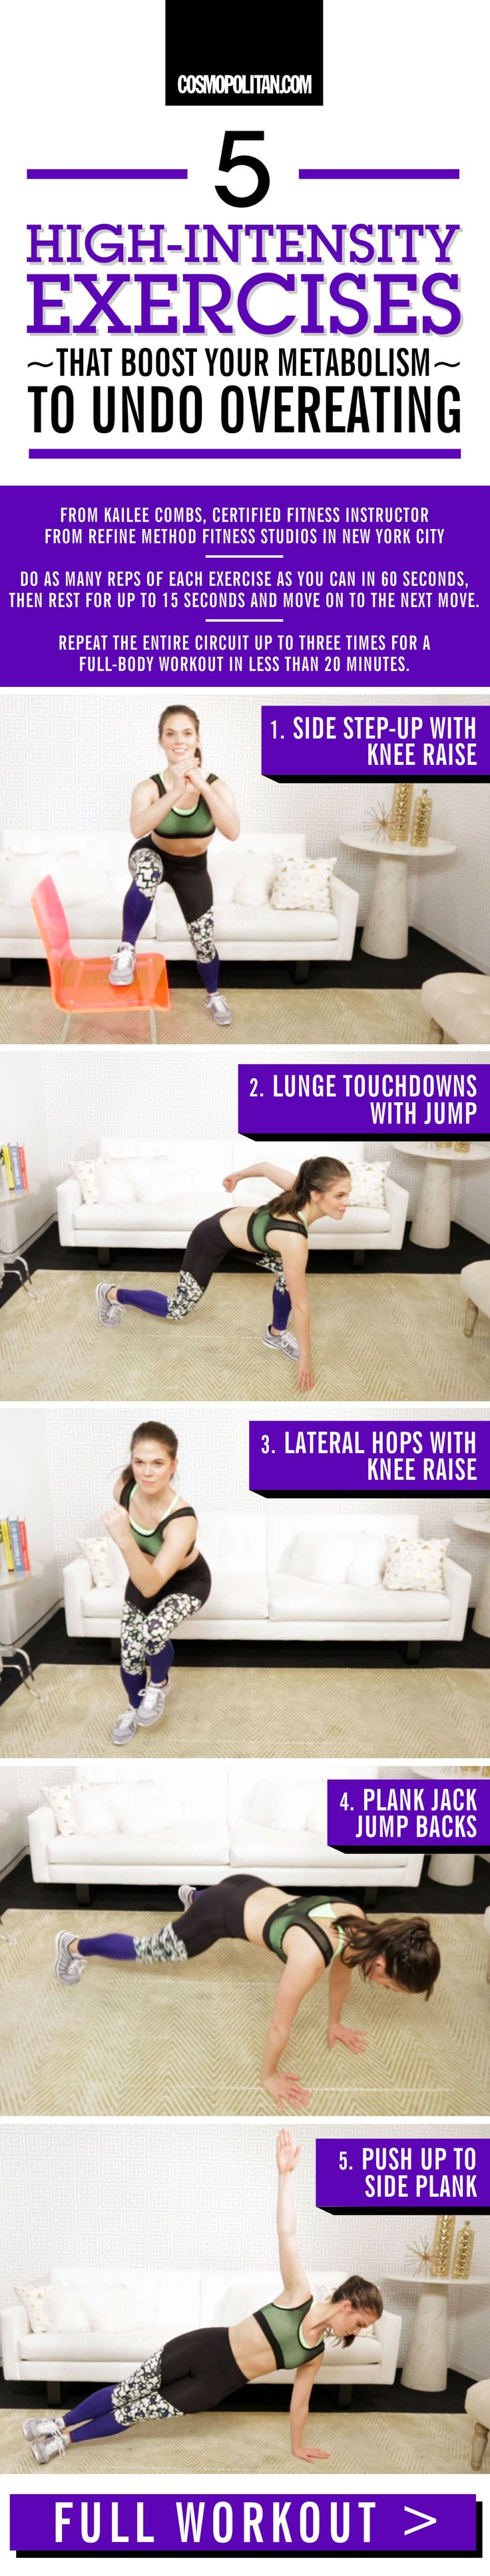 HIGH-INTENSITY EXERCISES TO BOOST YOUR METABOLISM: The best way to undo overeating is to get back on track with a workout that makes you S-W-E-A-T. (You'll feel way better afterward, trust.) The morning after eating a massive meal, don't beat yourself up. Just perform this circuit, designed by Kailee Combs, certified fitness instructor from Refine Method, a high-intensity training studio in New York City. You'll raise your heart rate while giving your metabolism a much-needed boost. Click…